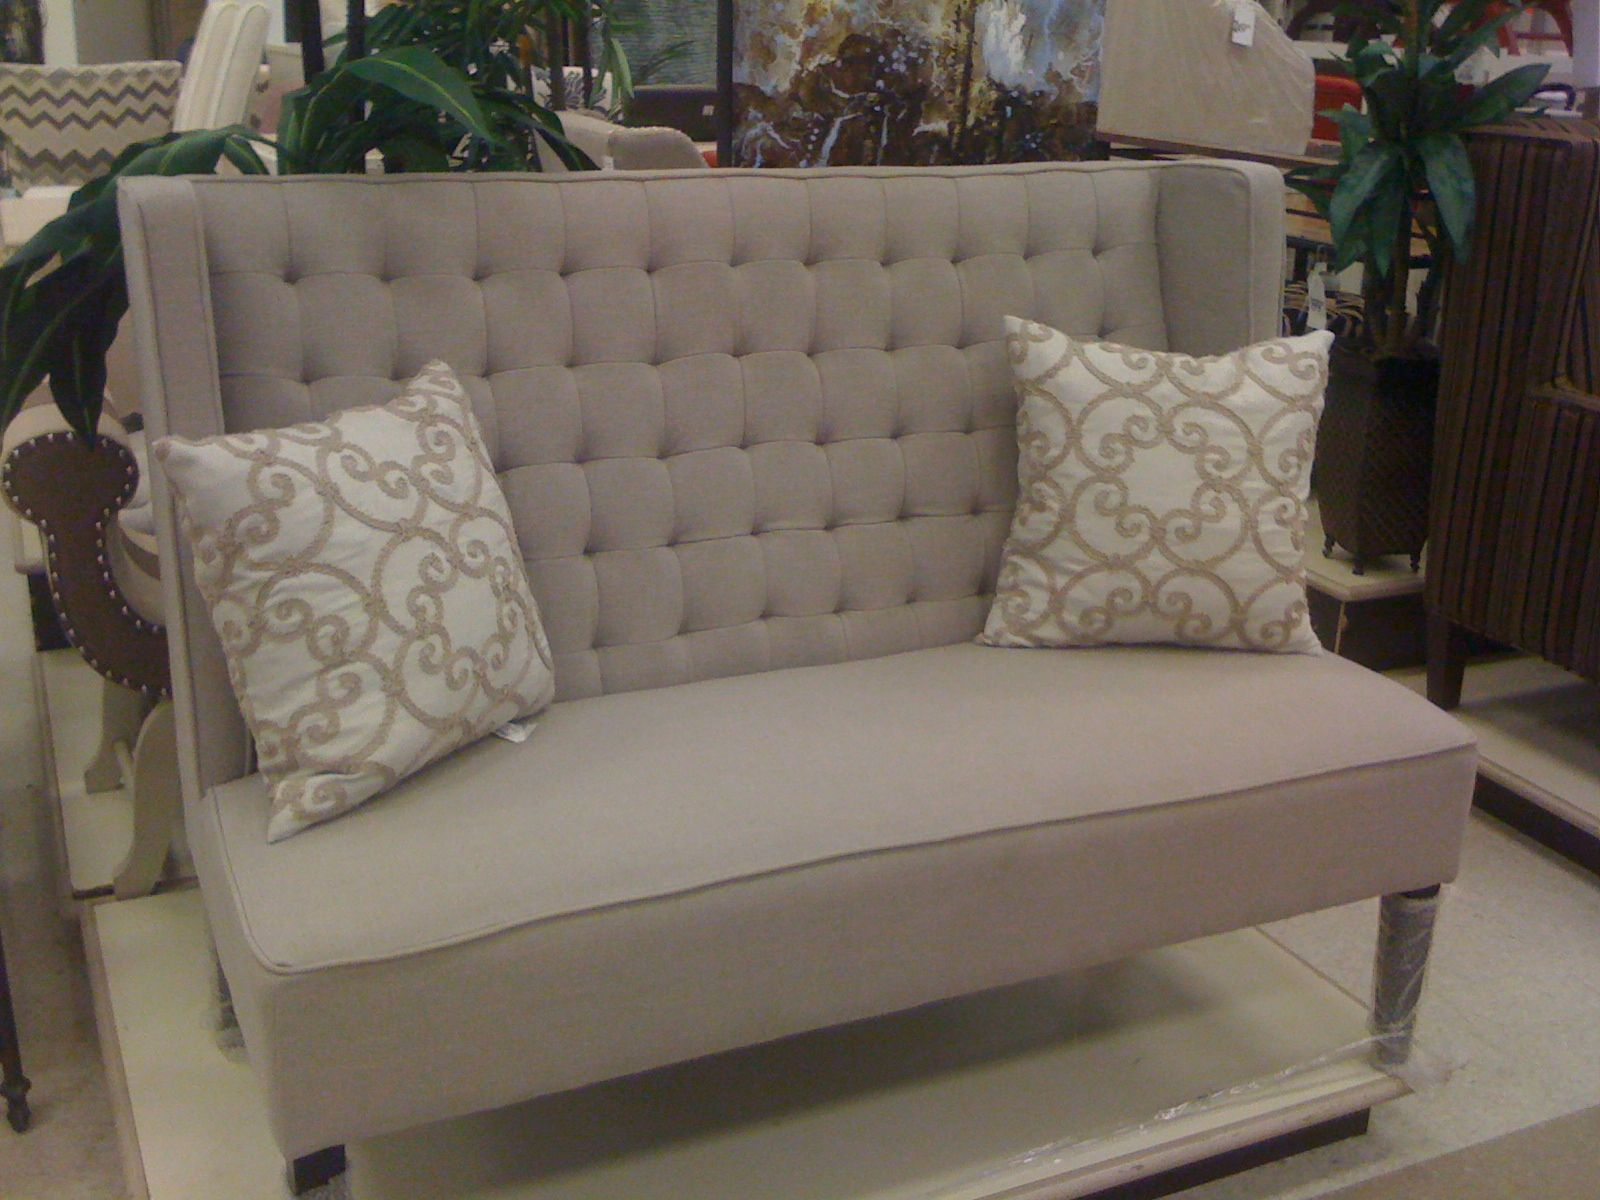 Grey Loveseat From Homesense